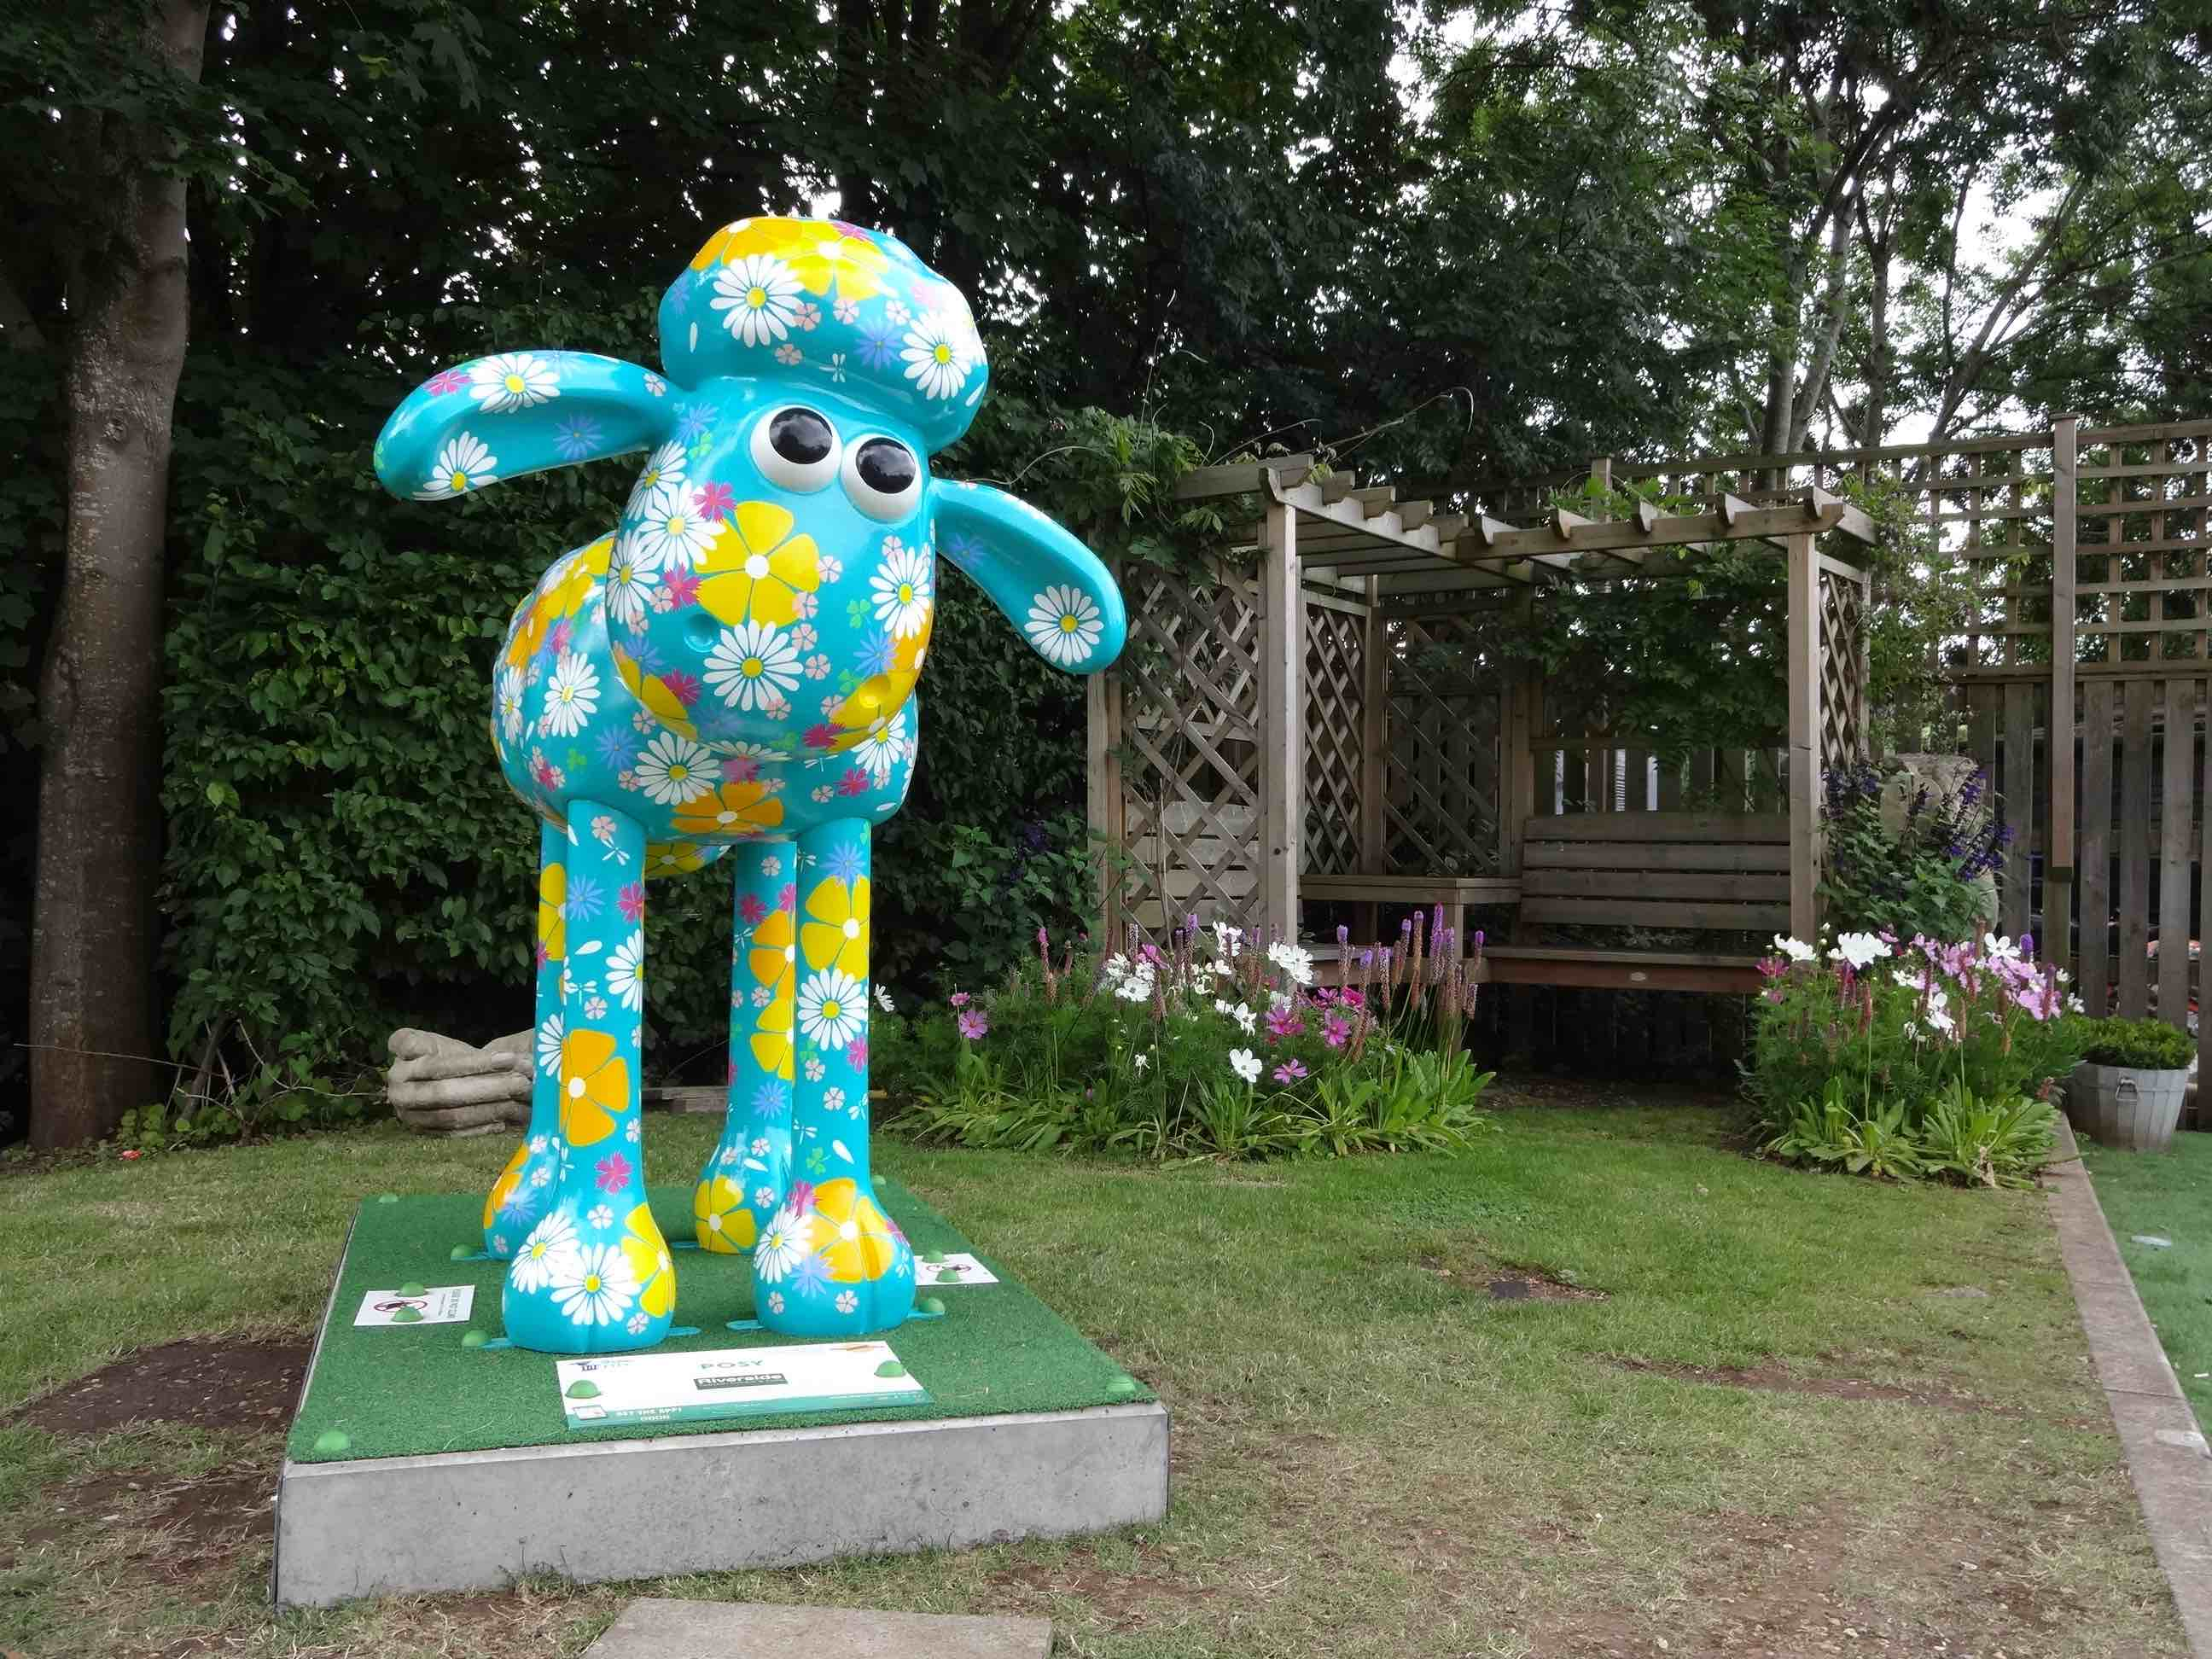 Bristol Shaun In The City Southbank Trail Posy Gabrielle Ruffle Riverside Garden Centre Clift House Road The Lady Travels